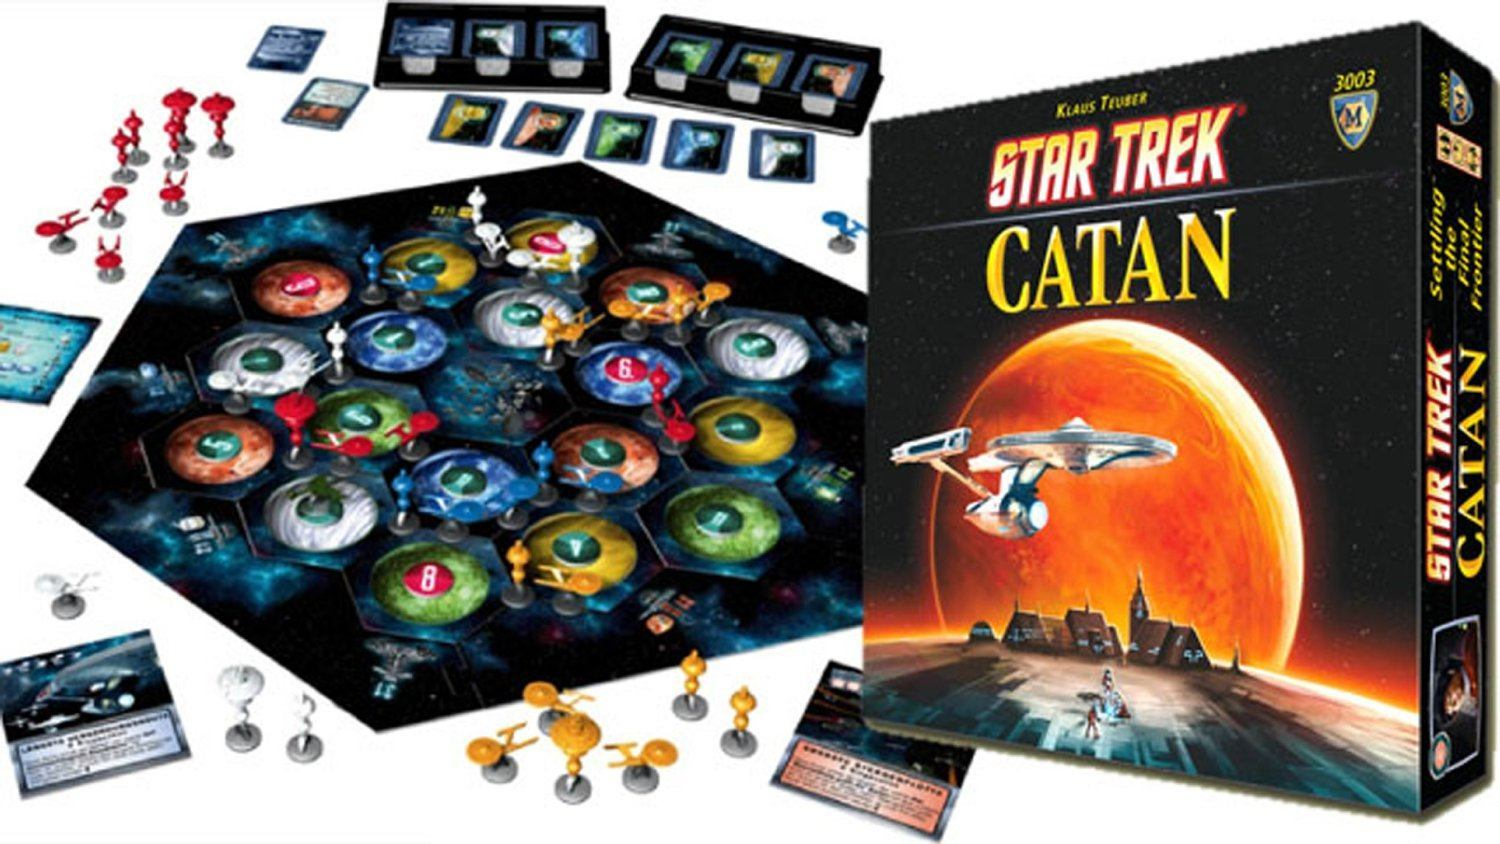 star-trek-catan-board-games-2015-hottest-toys.jpg